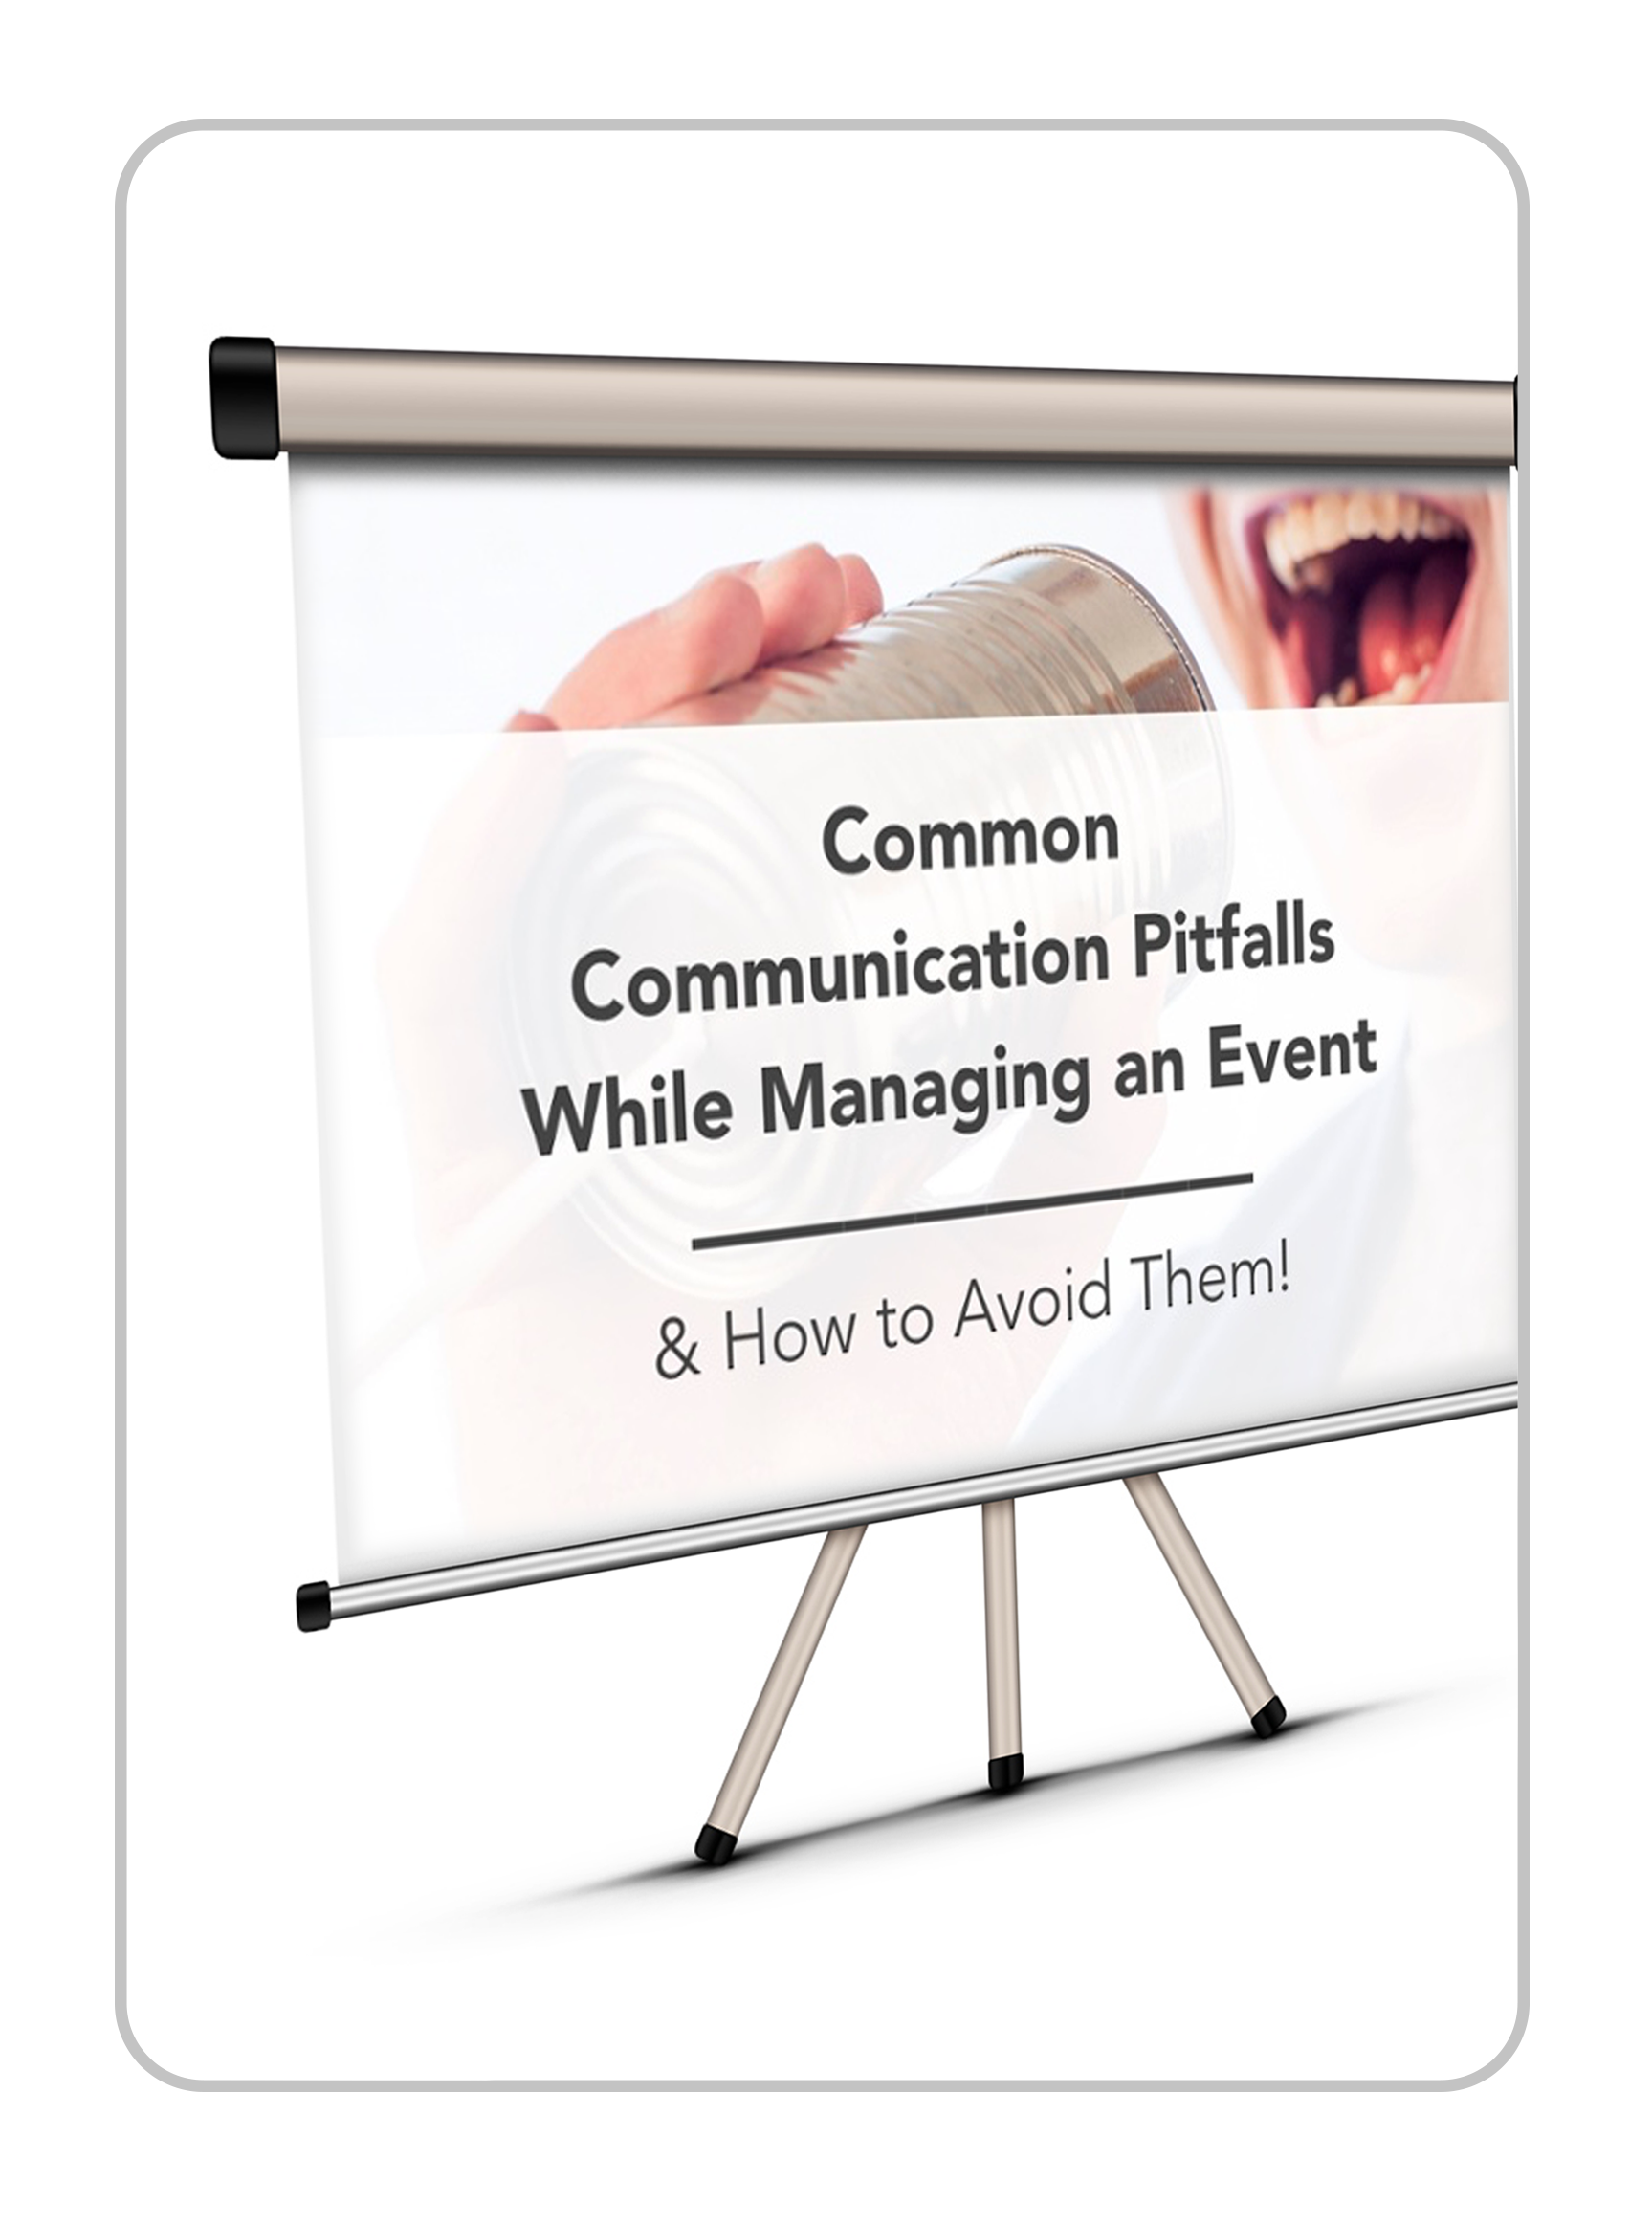 Communication Pitfalls While Managing an Event